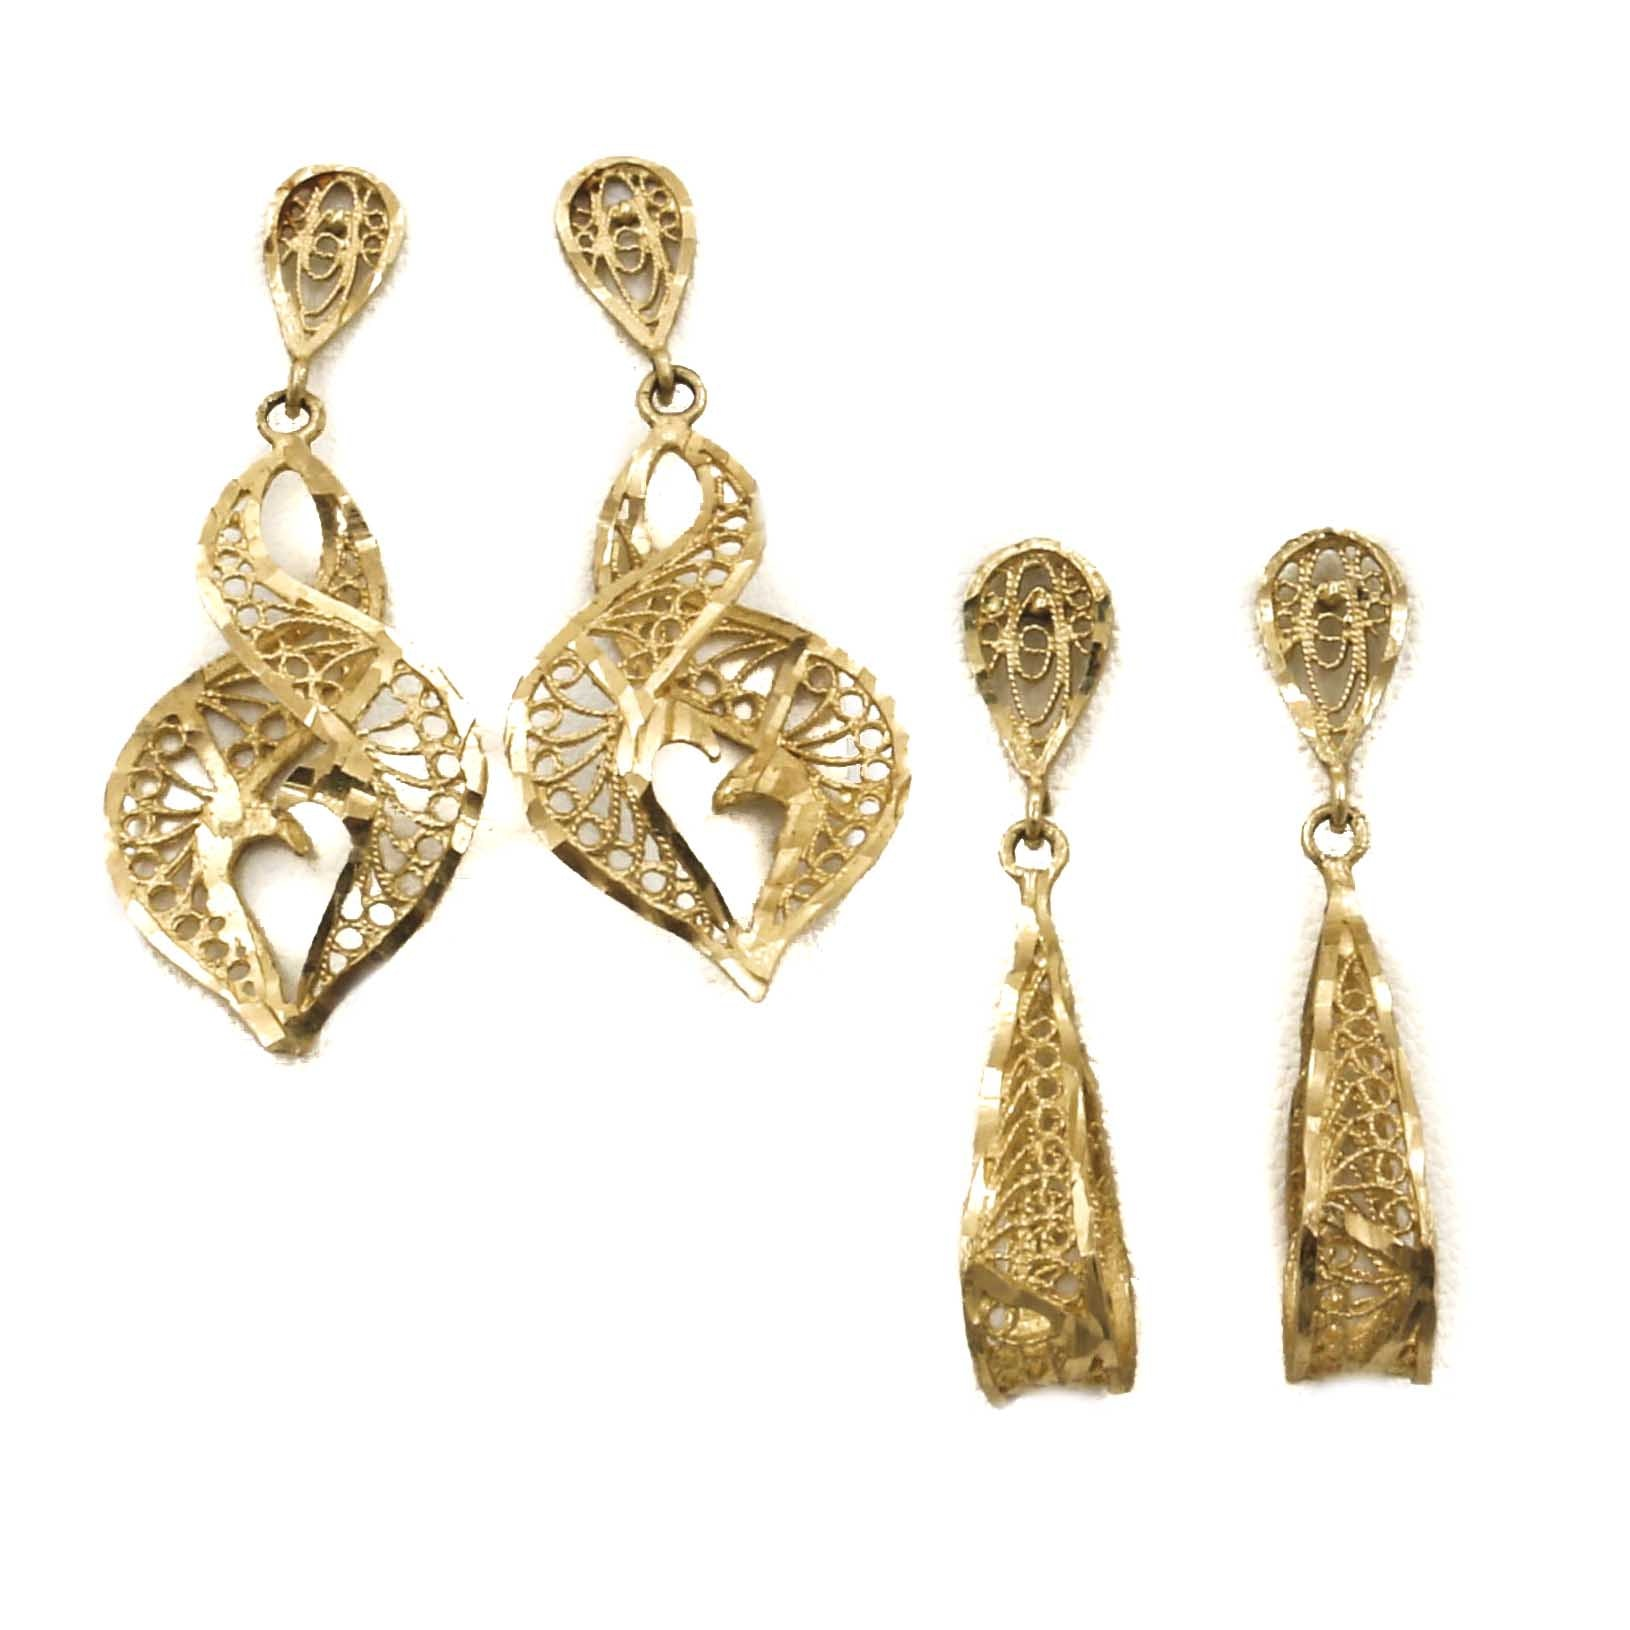 14K Yellow Gold Openwork Earrings